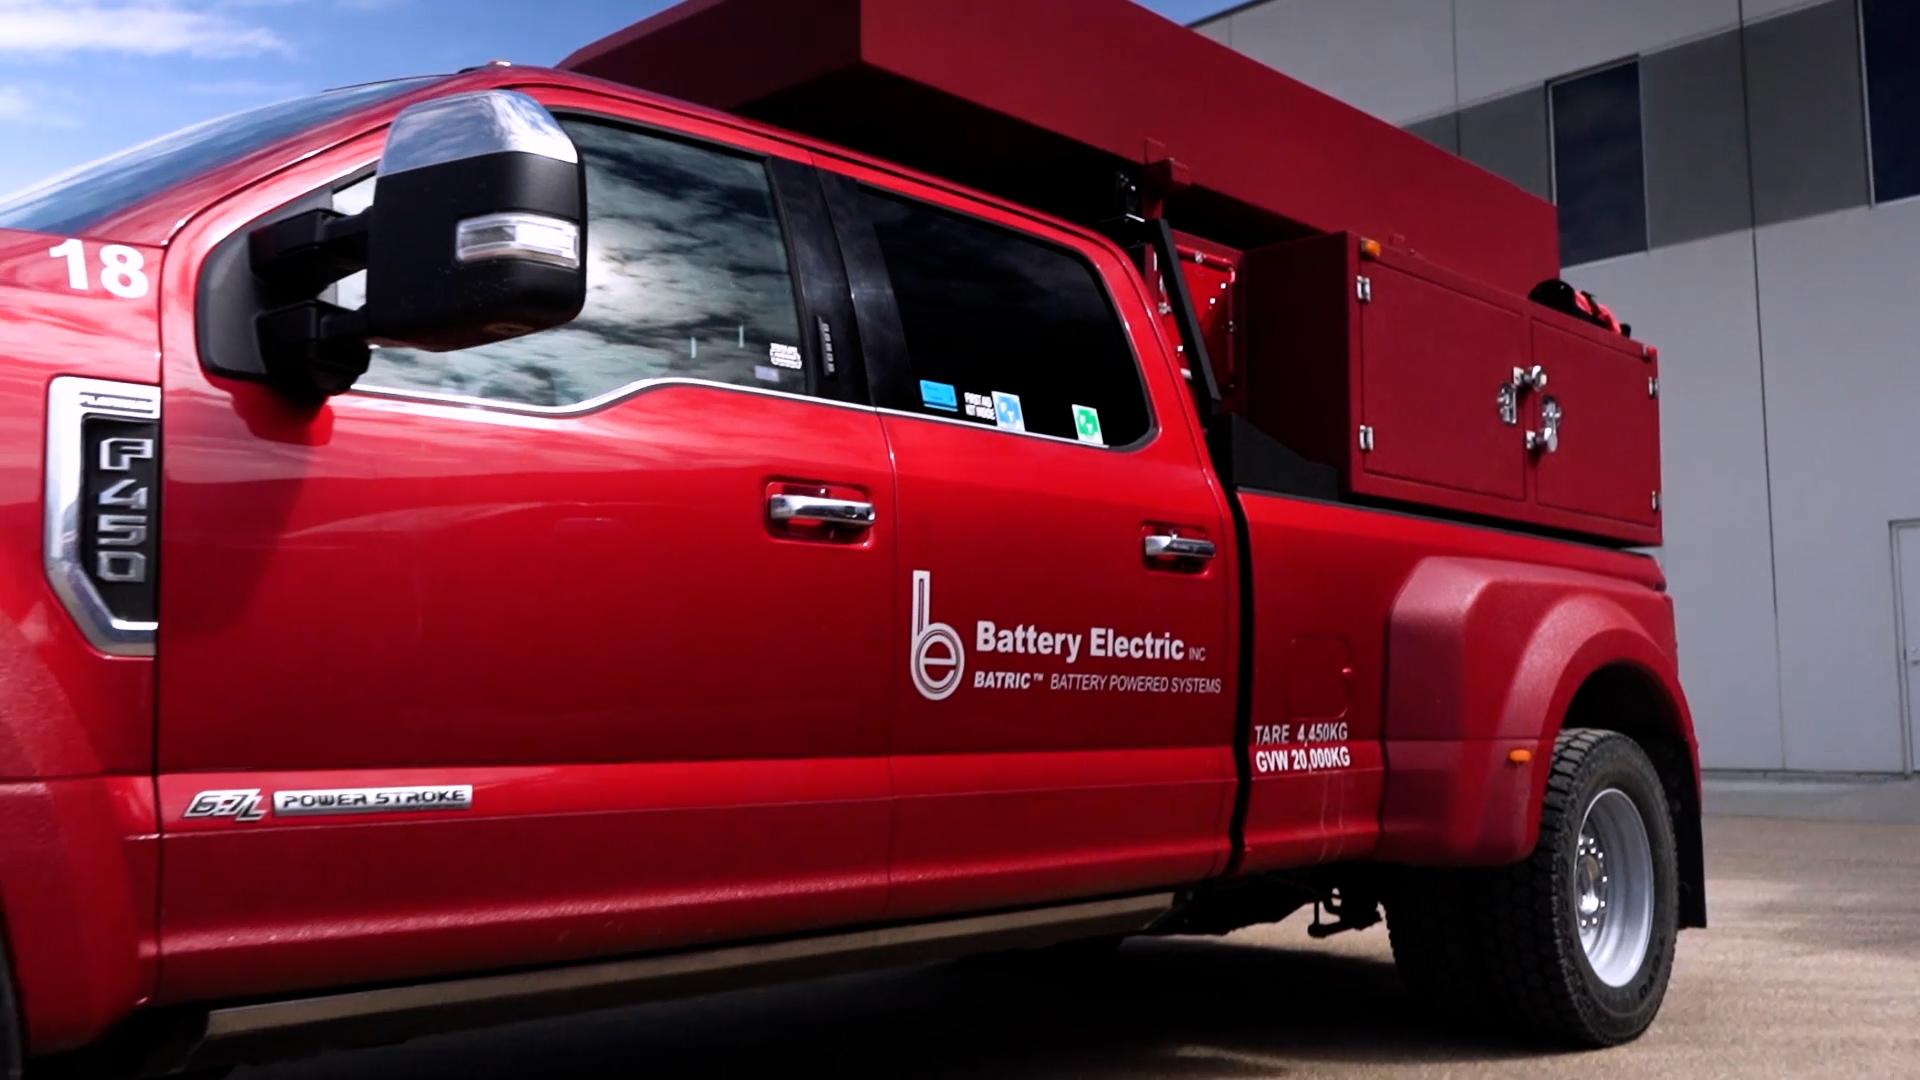 Battery Electric Red Service truck